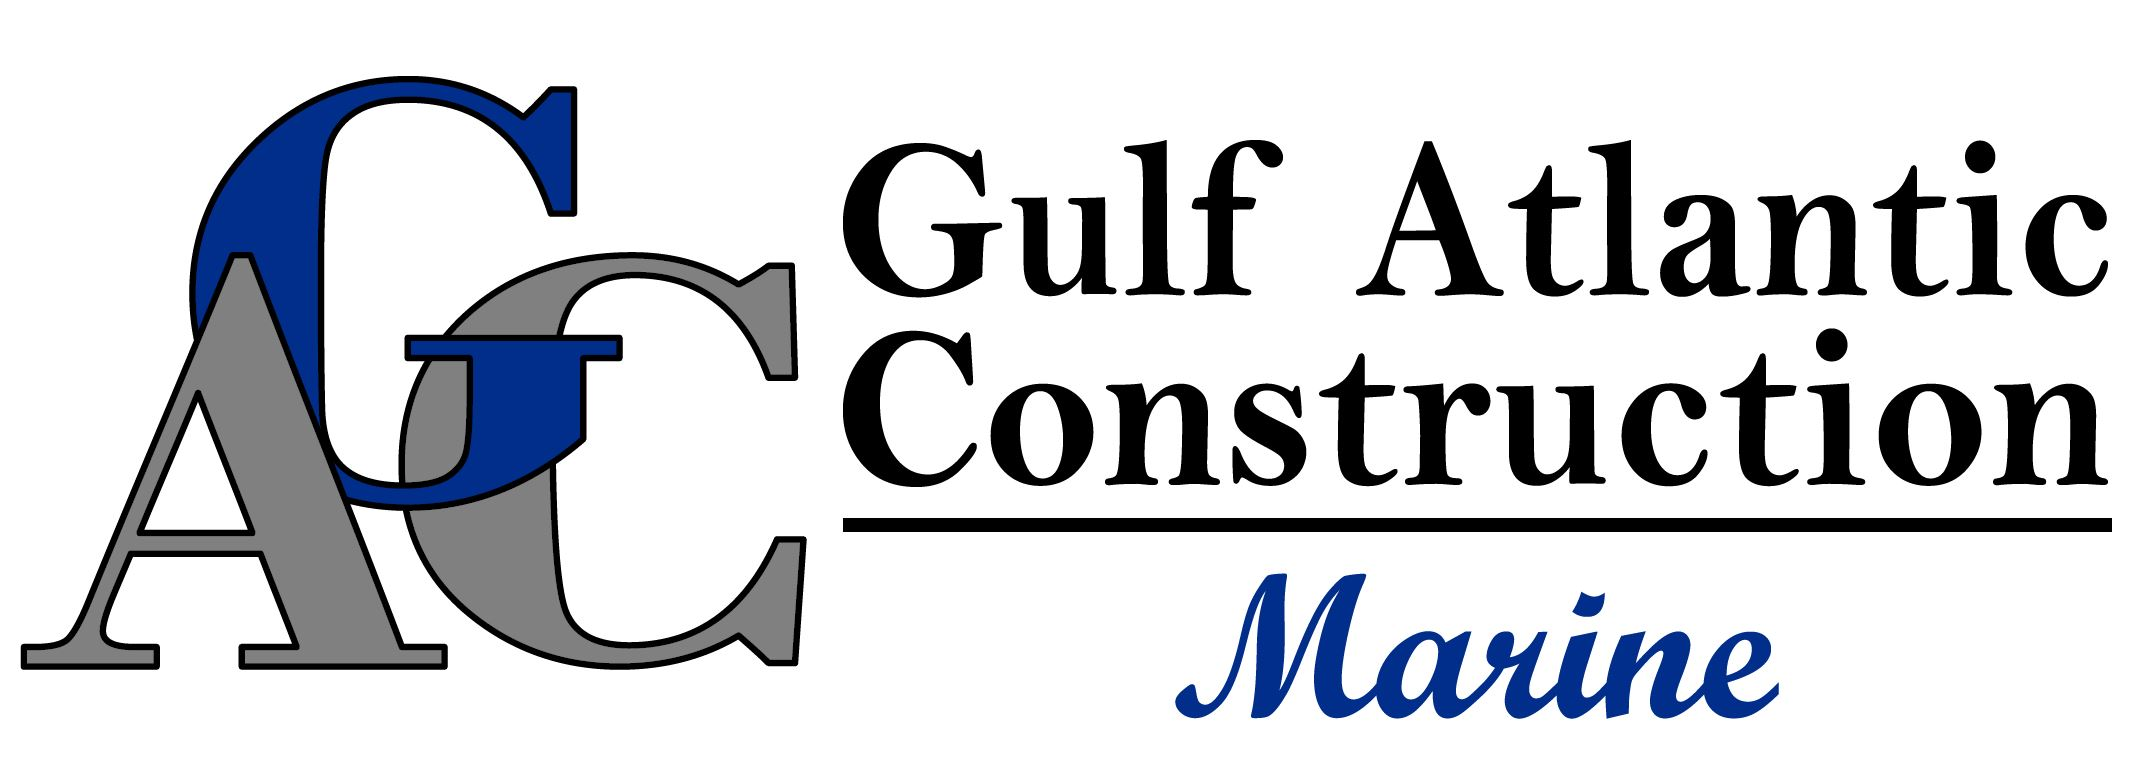 Gulf Atlantic Construction & Marine